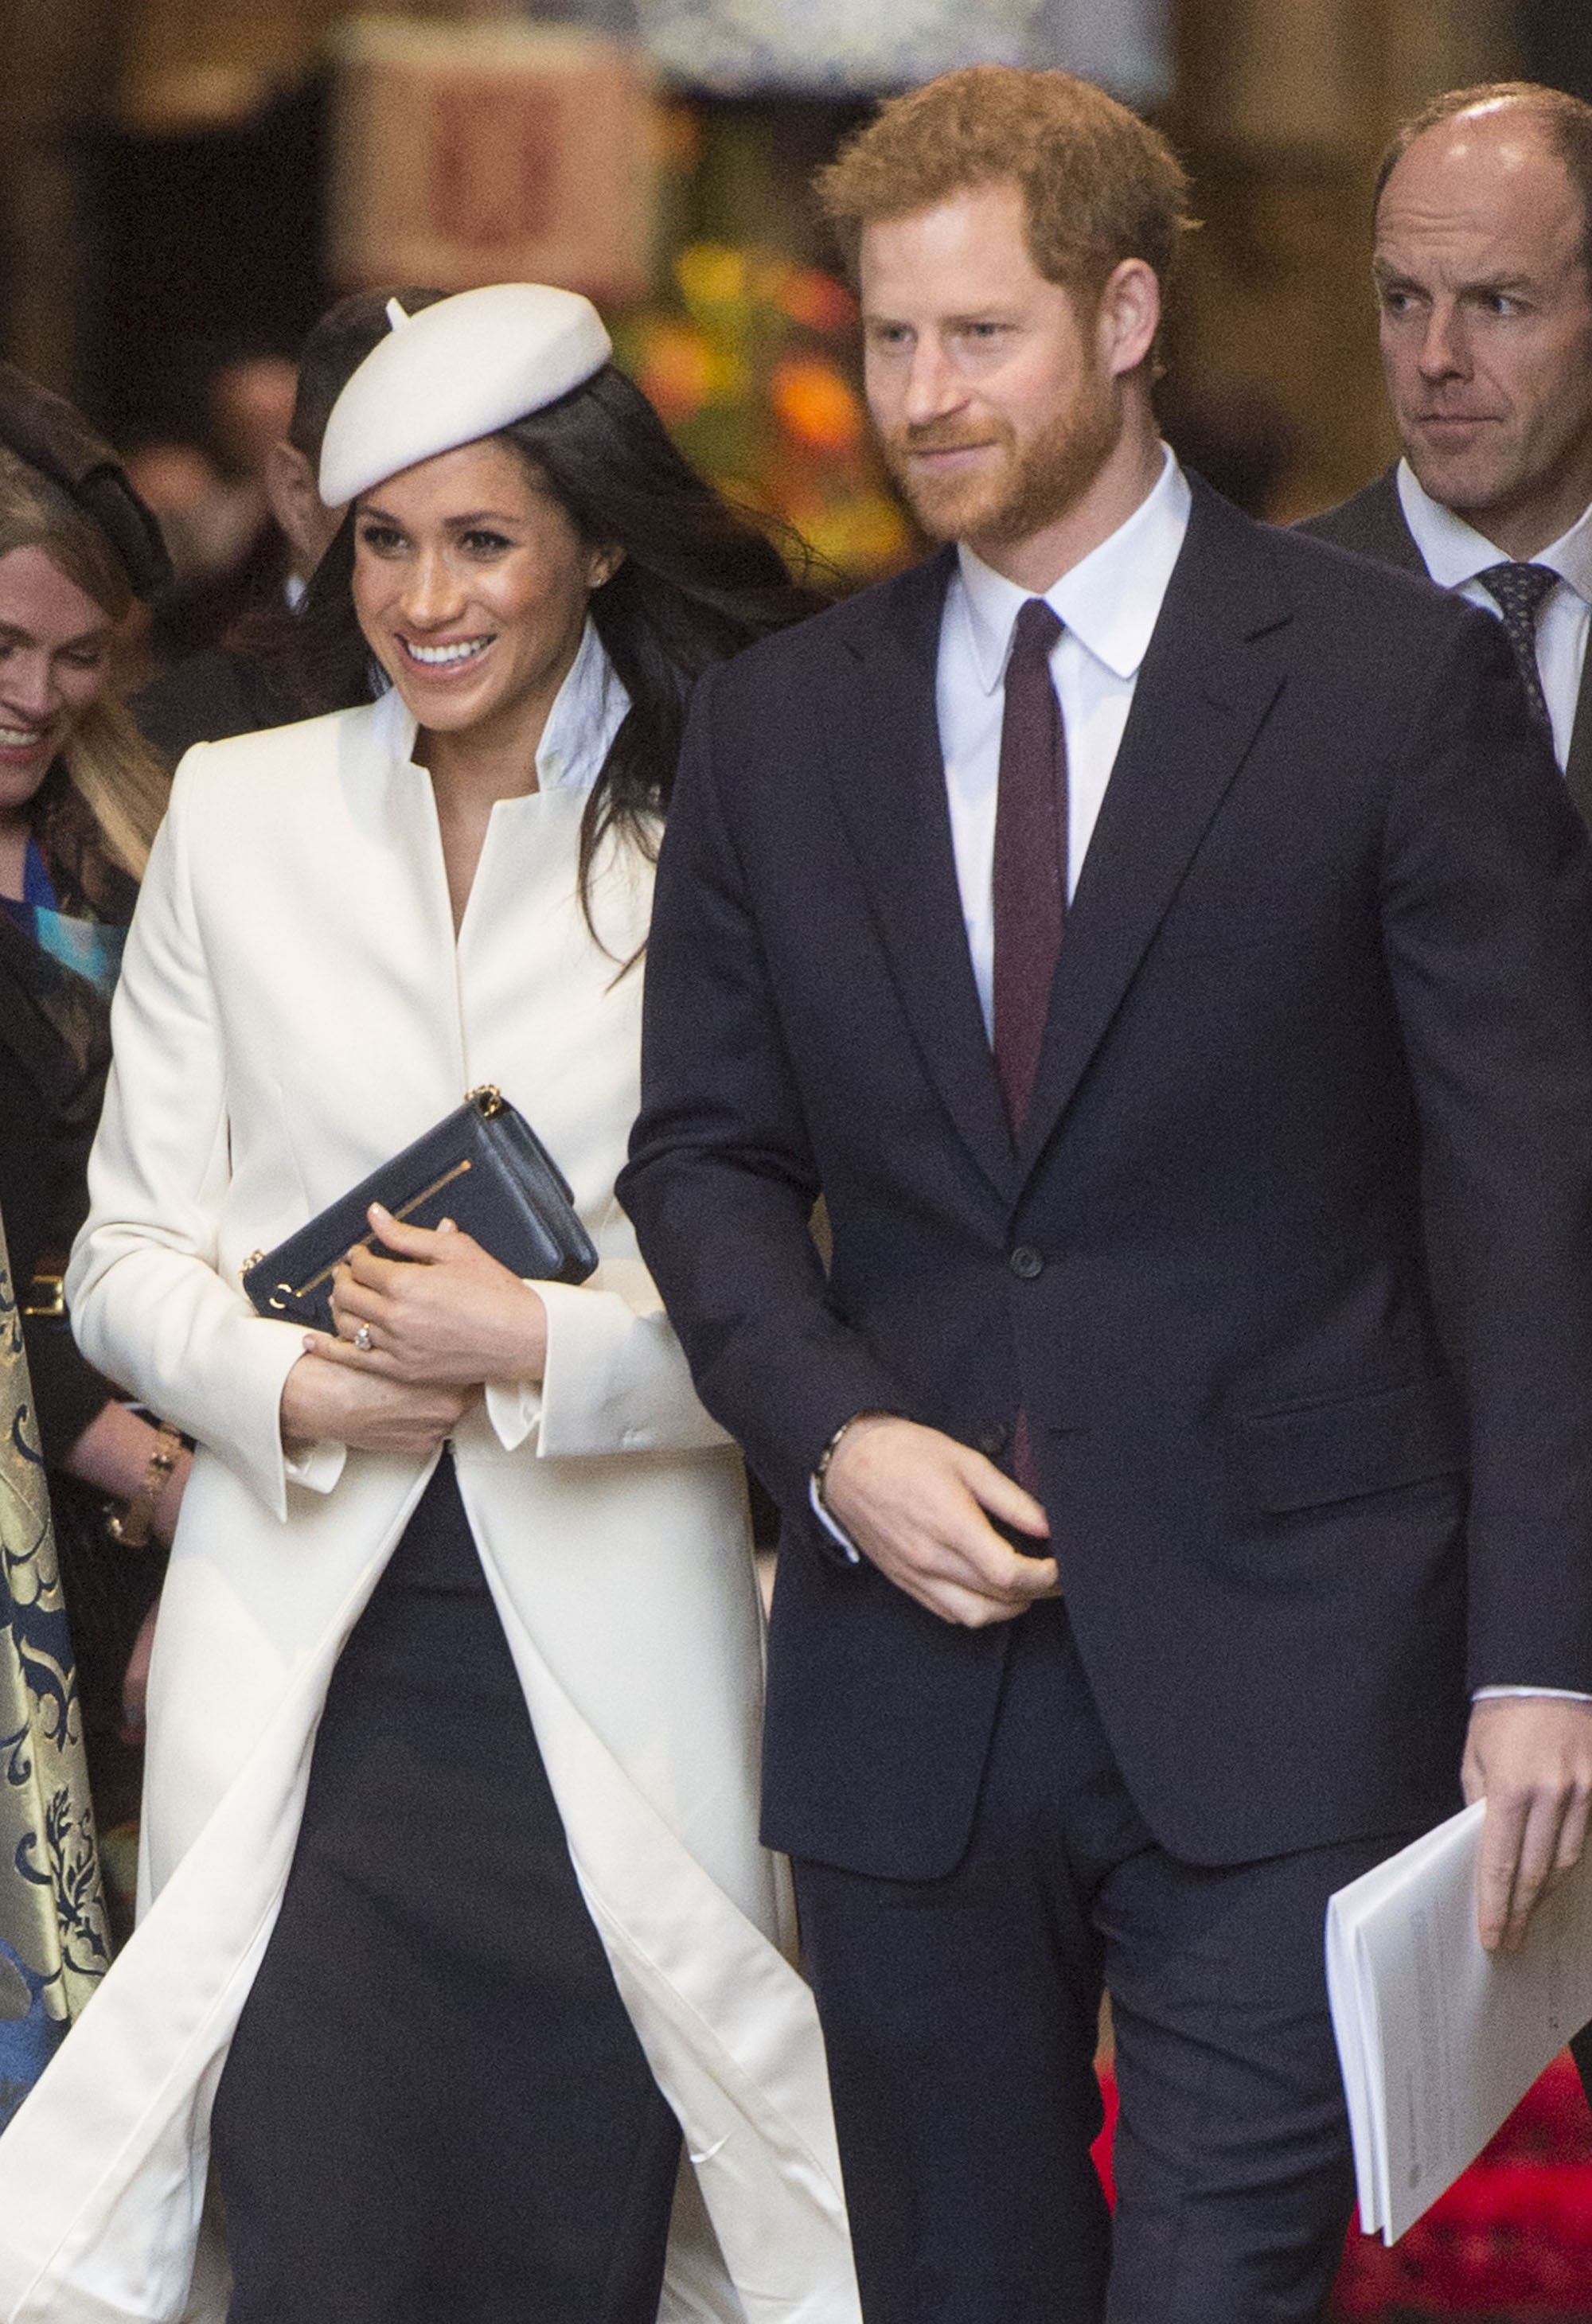 Meghan Markle and Prince Harry Welcome Their First Child